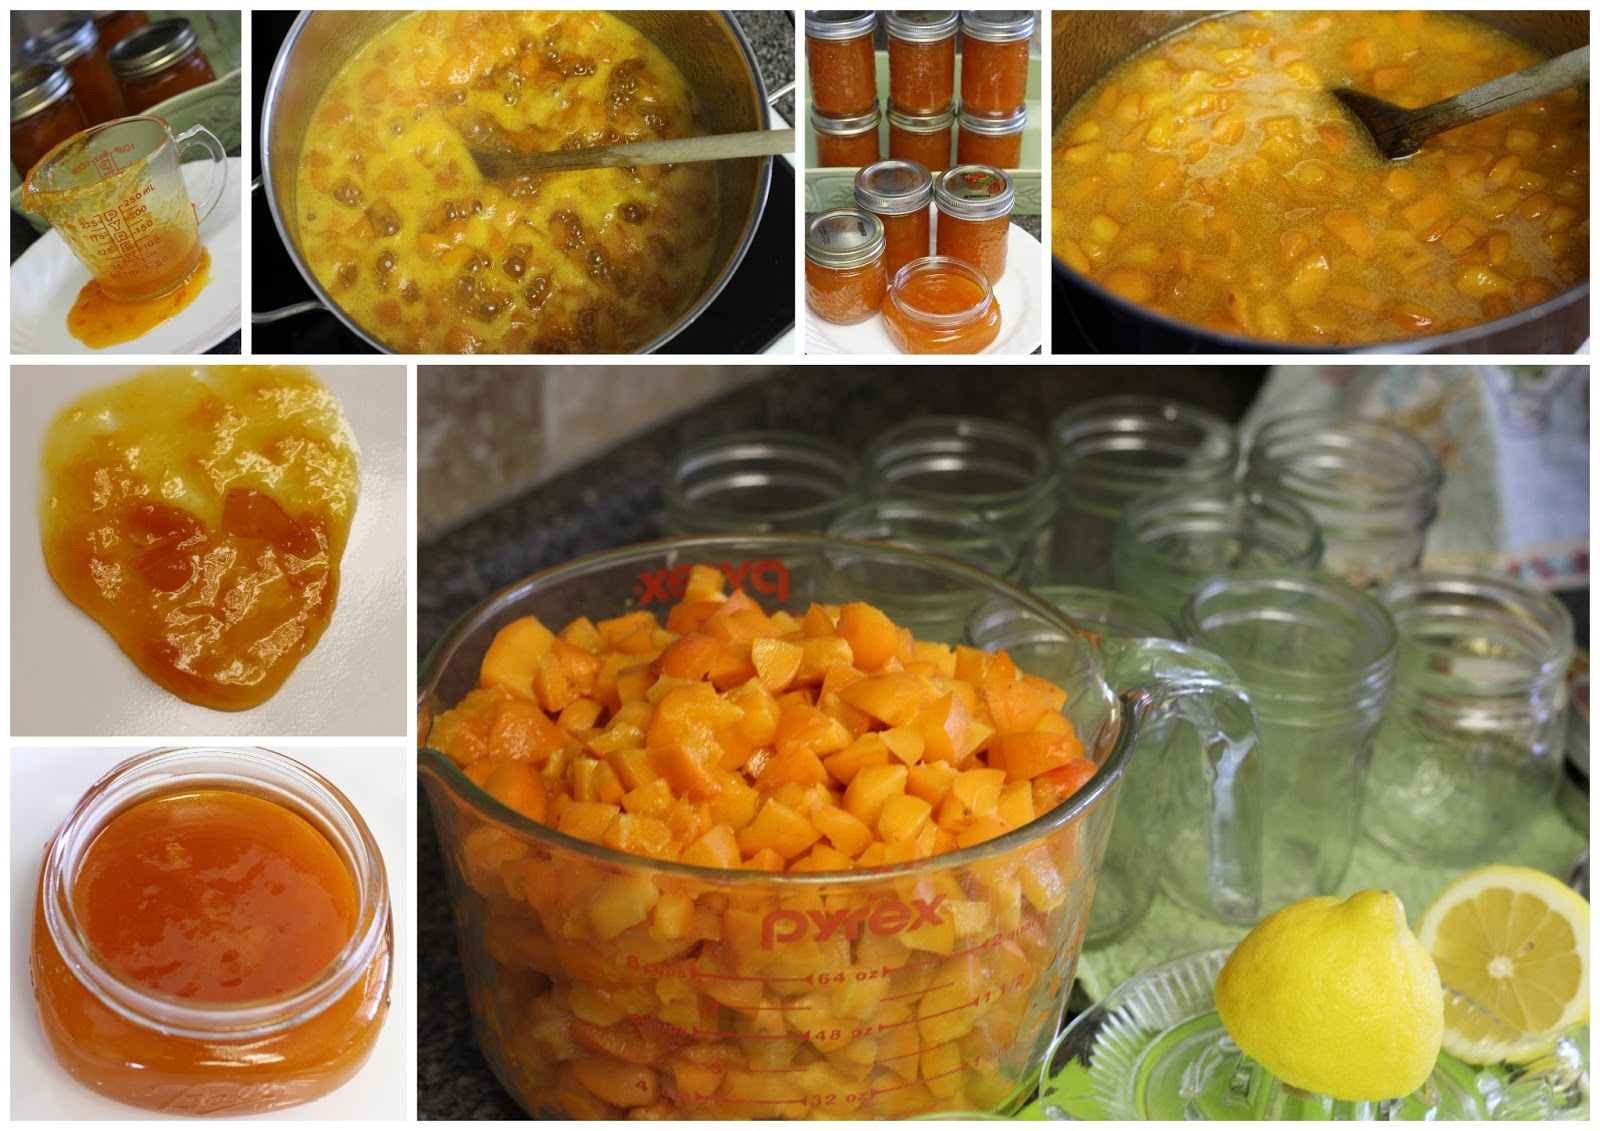 Mennonite girls can cook old fashioned apricot jam for Peach preserves no pectin